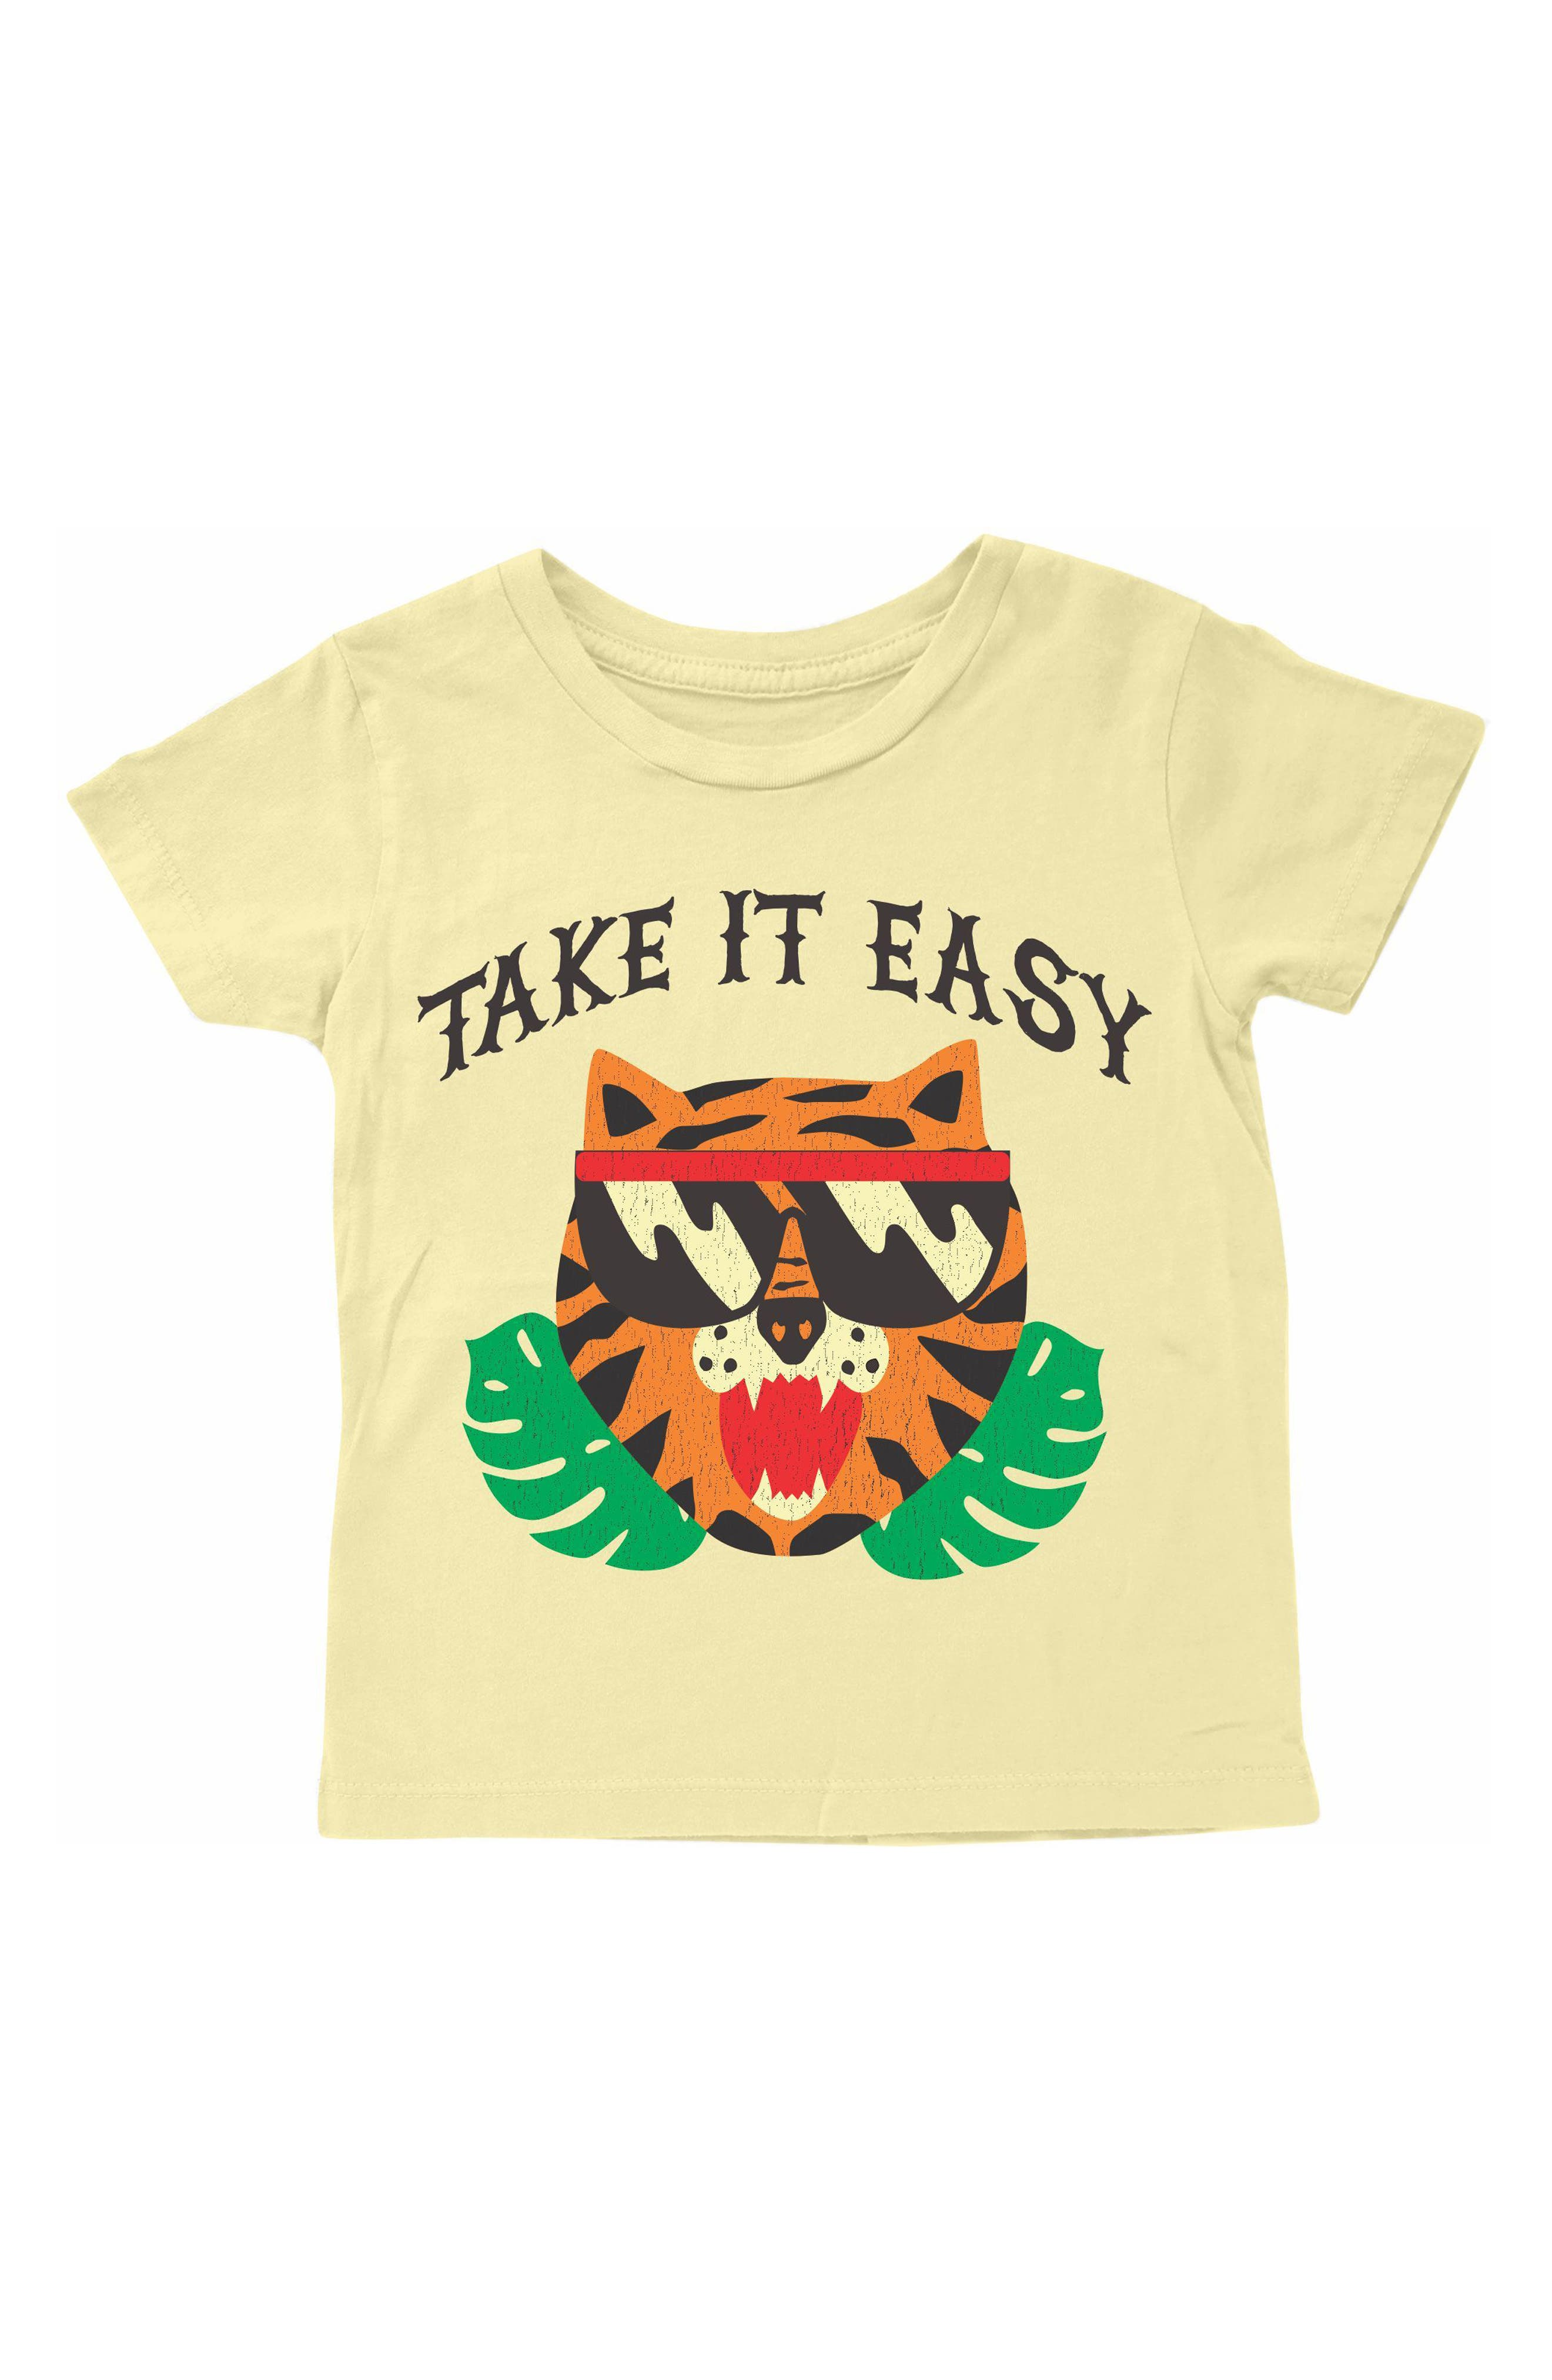 Take It Easy T-Shirt,                             Main thumbnail 1, color,                             700